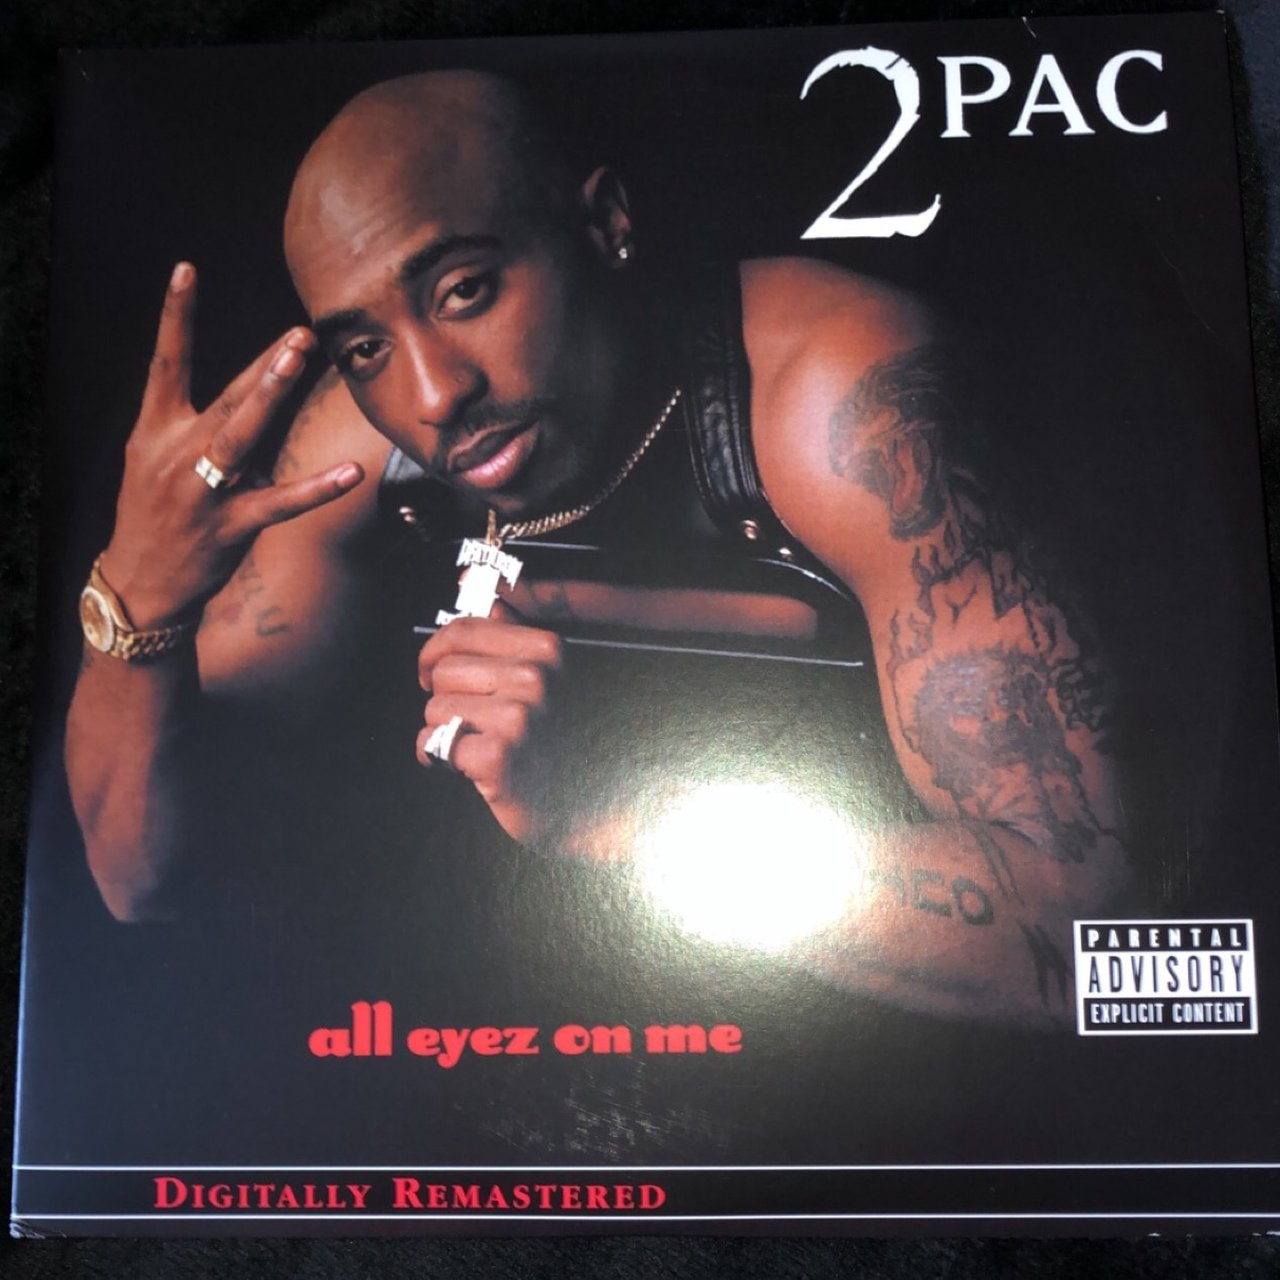 2pac all eyez on me remastered